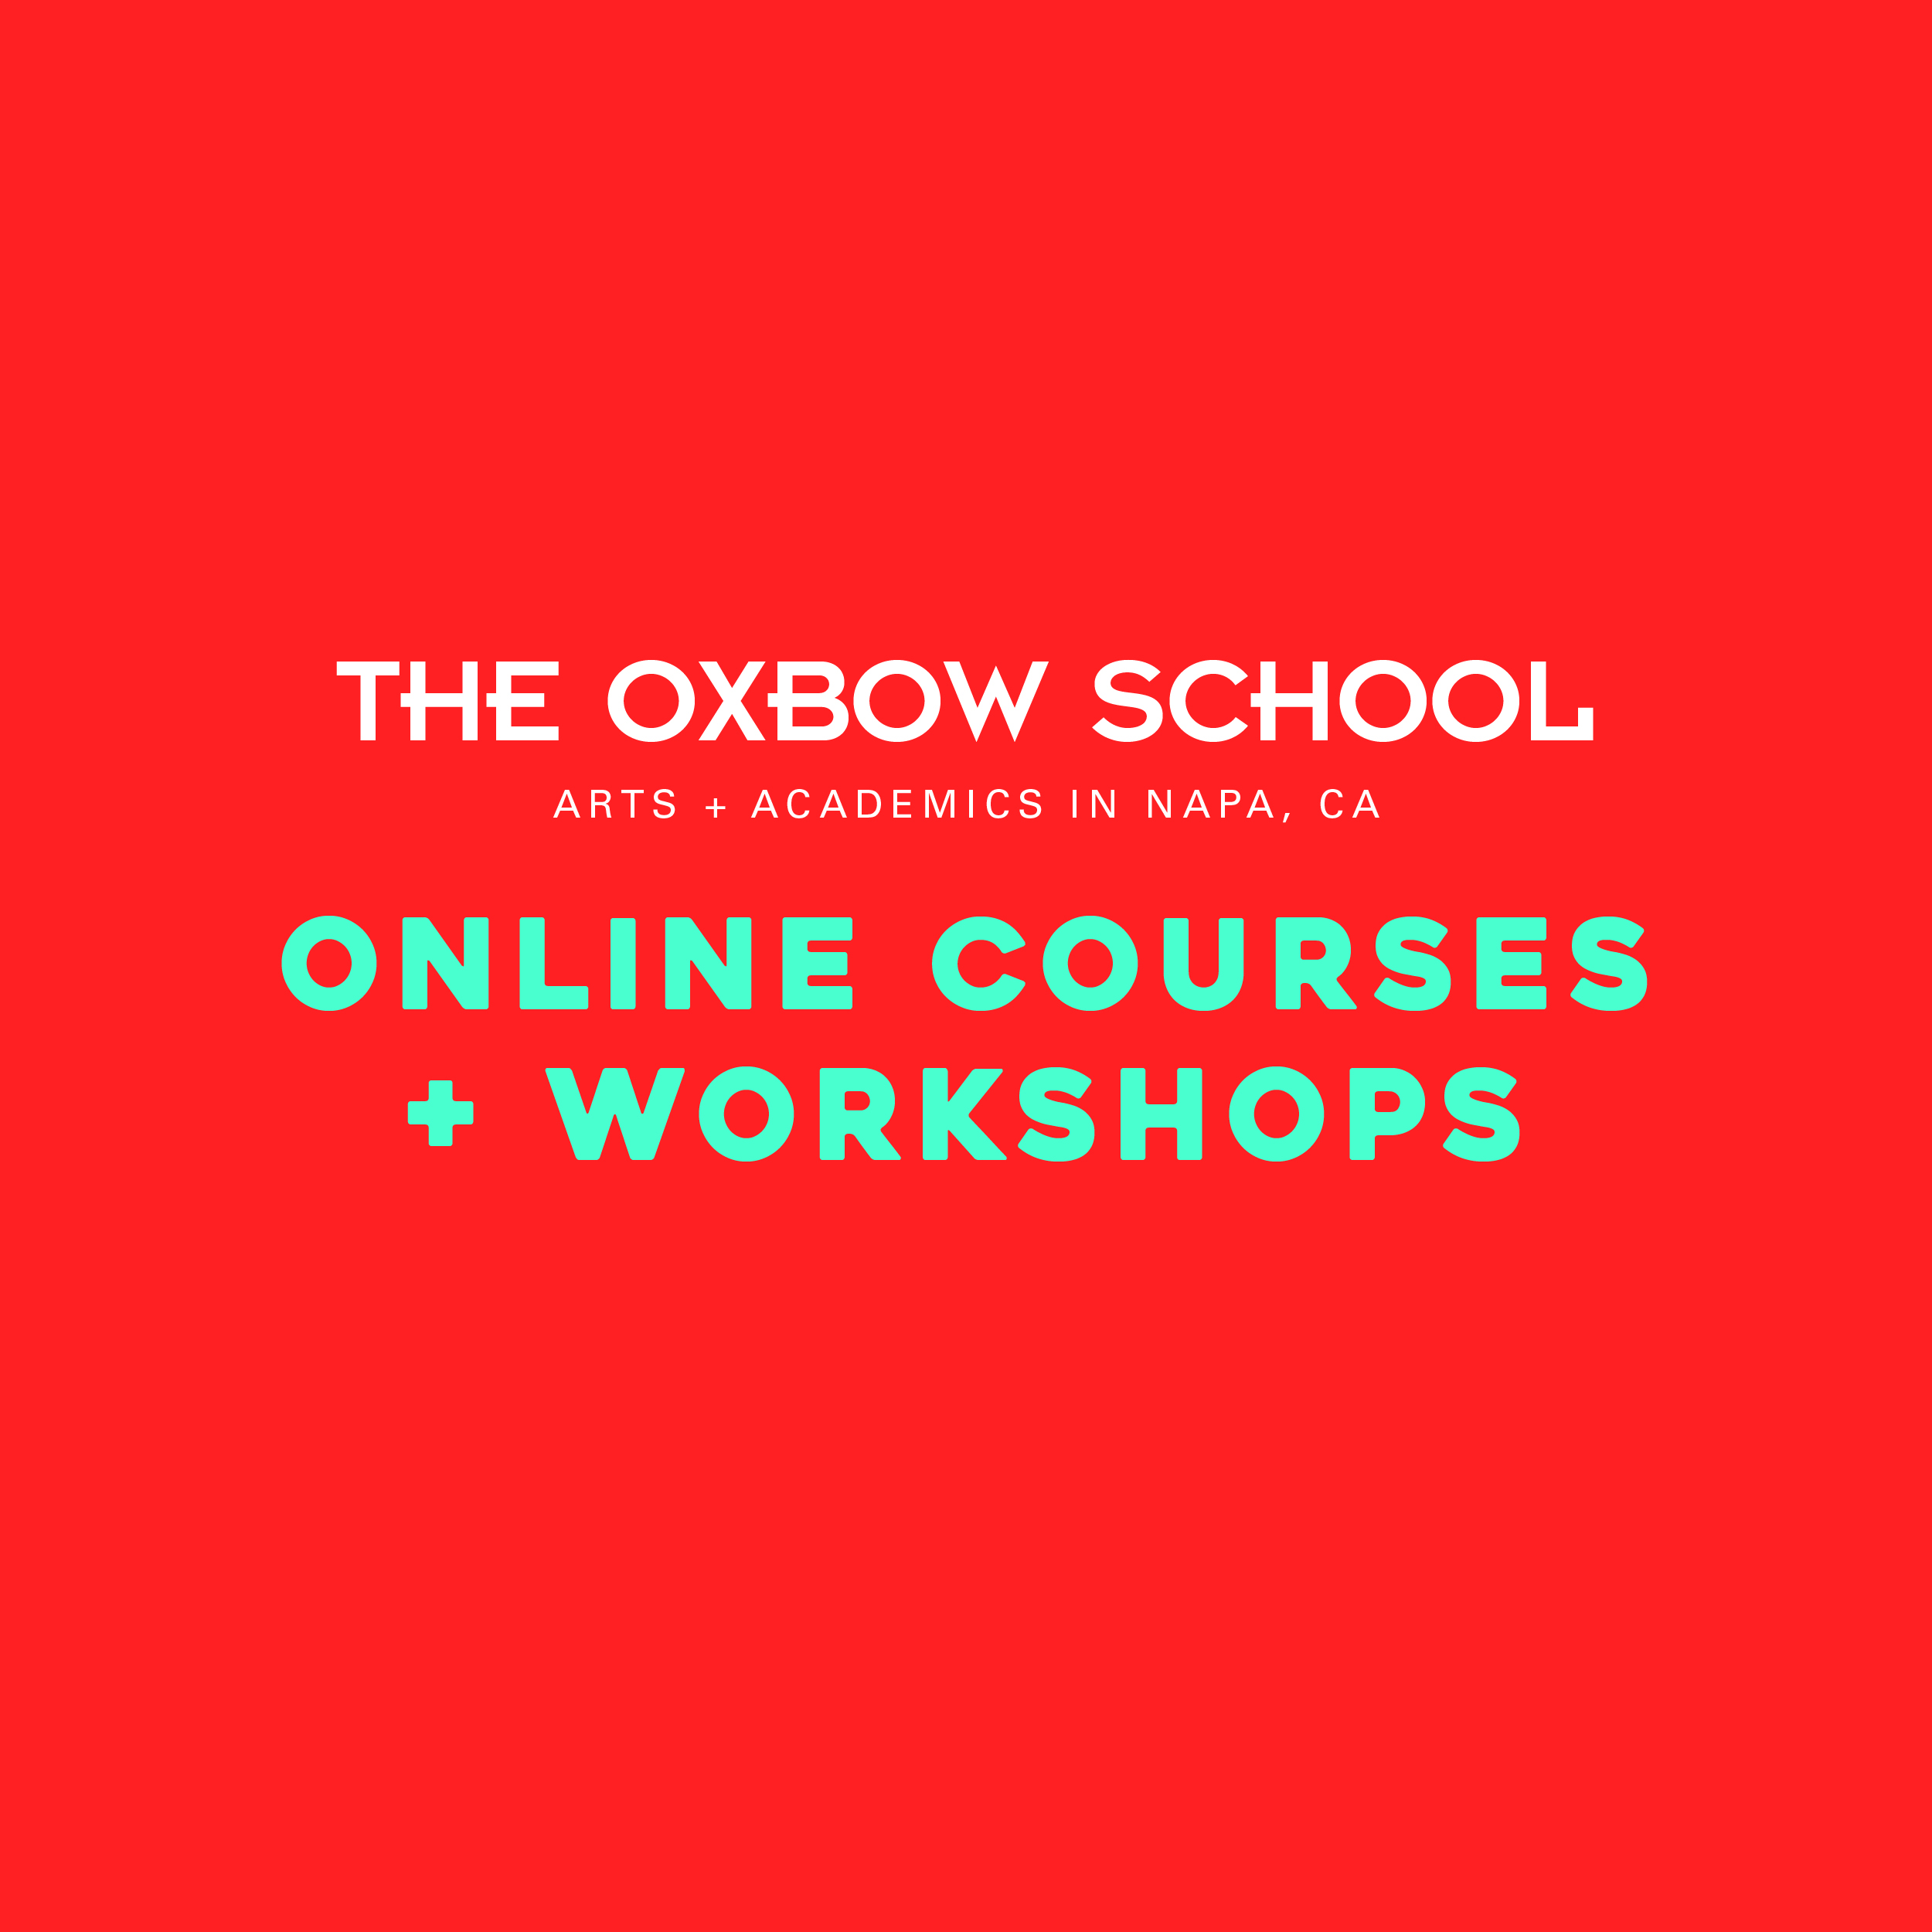 Business - Art | The Oxbow School: Online Courses